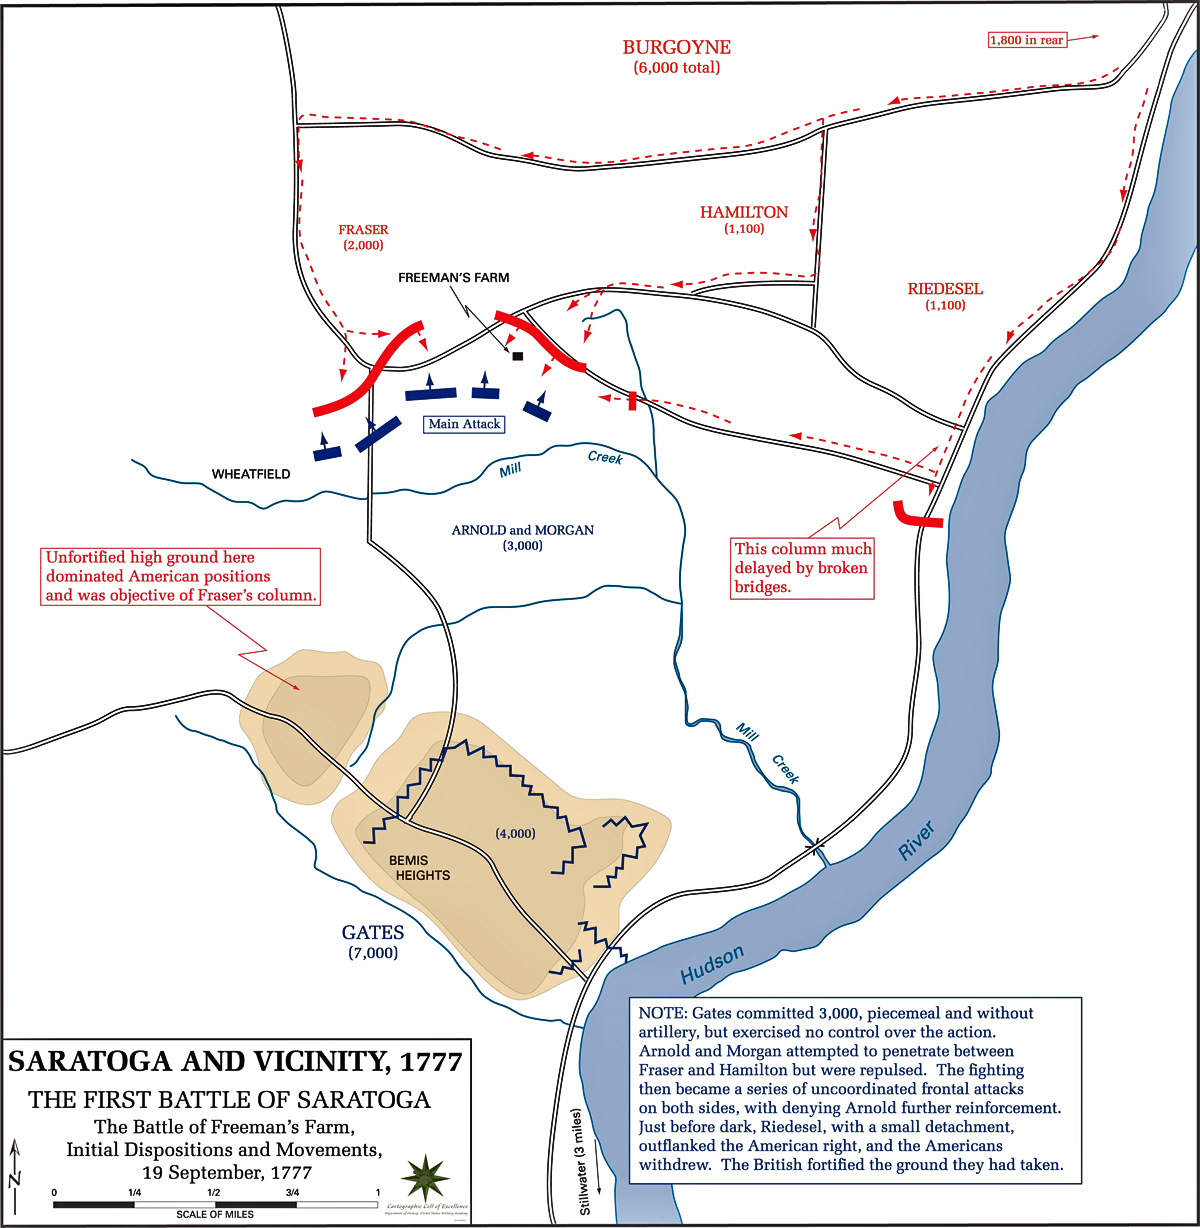 Map of the First Battle of Saratoga - Initial Dispositions - September 19, 1777